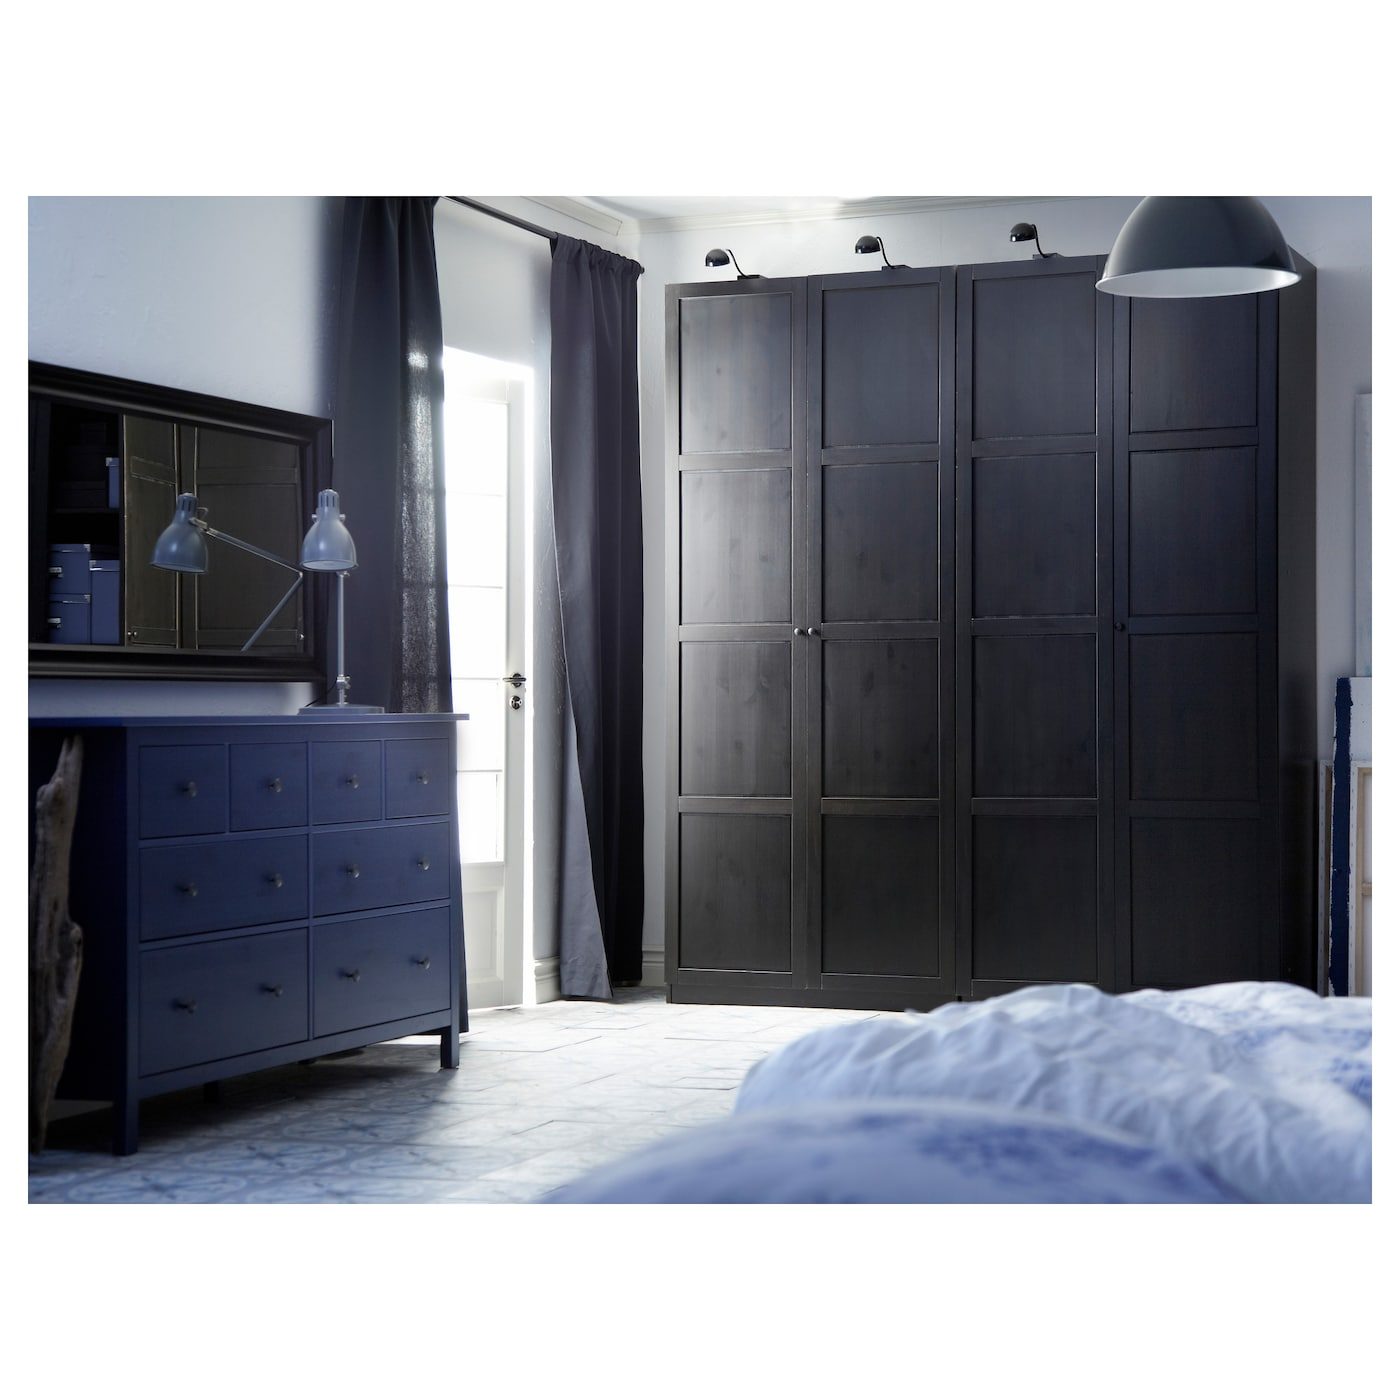 HEMNES Door With Hinges Blackbrown X Cm IKEA - Ikea wardrobe